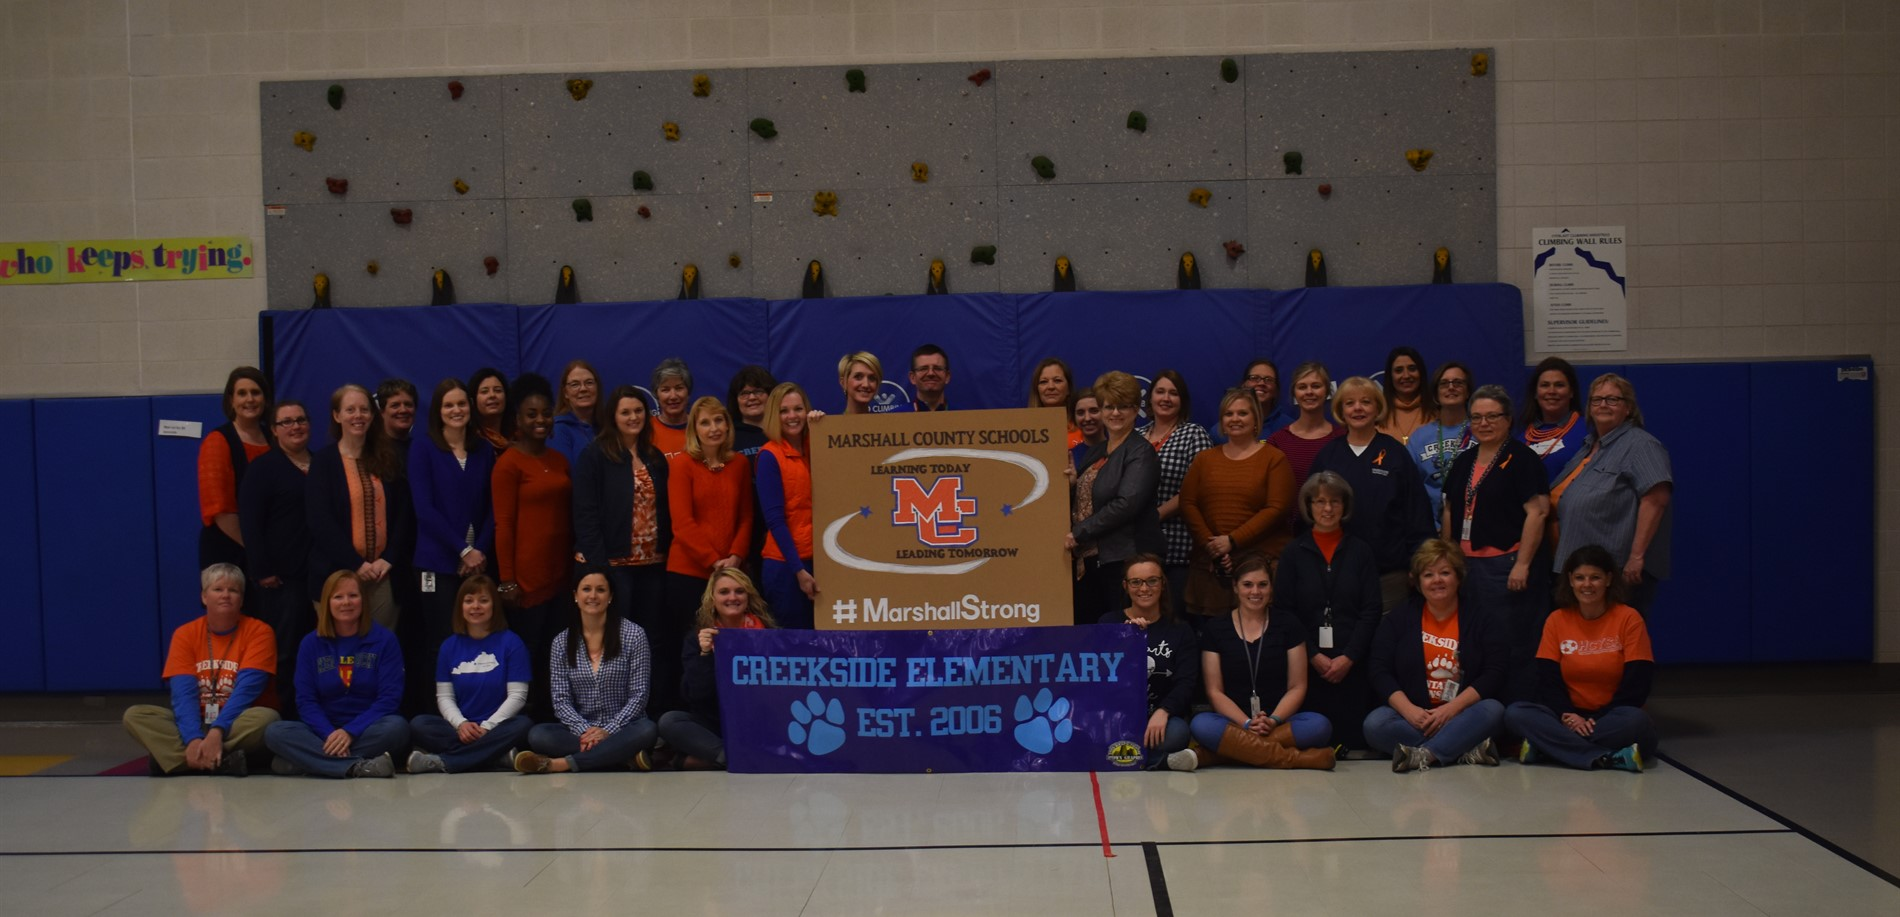 Creekside Elementary Faculty and Staff wore orange and blue to support Marshall County.